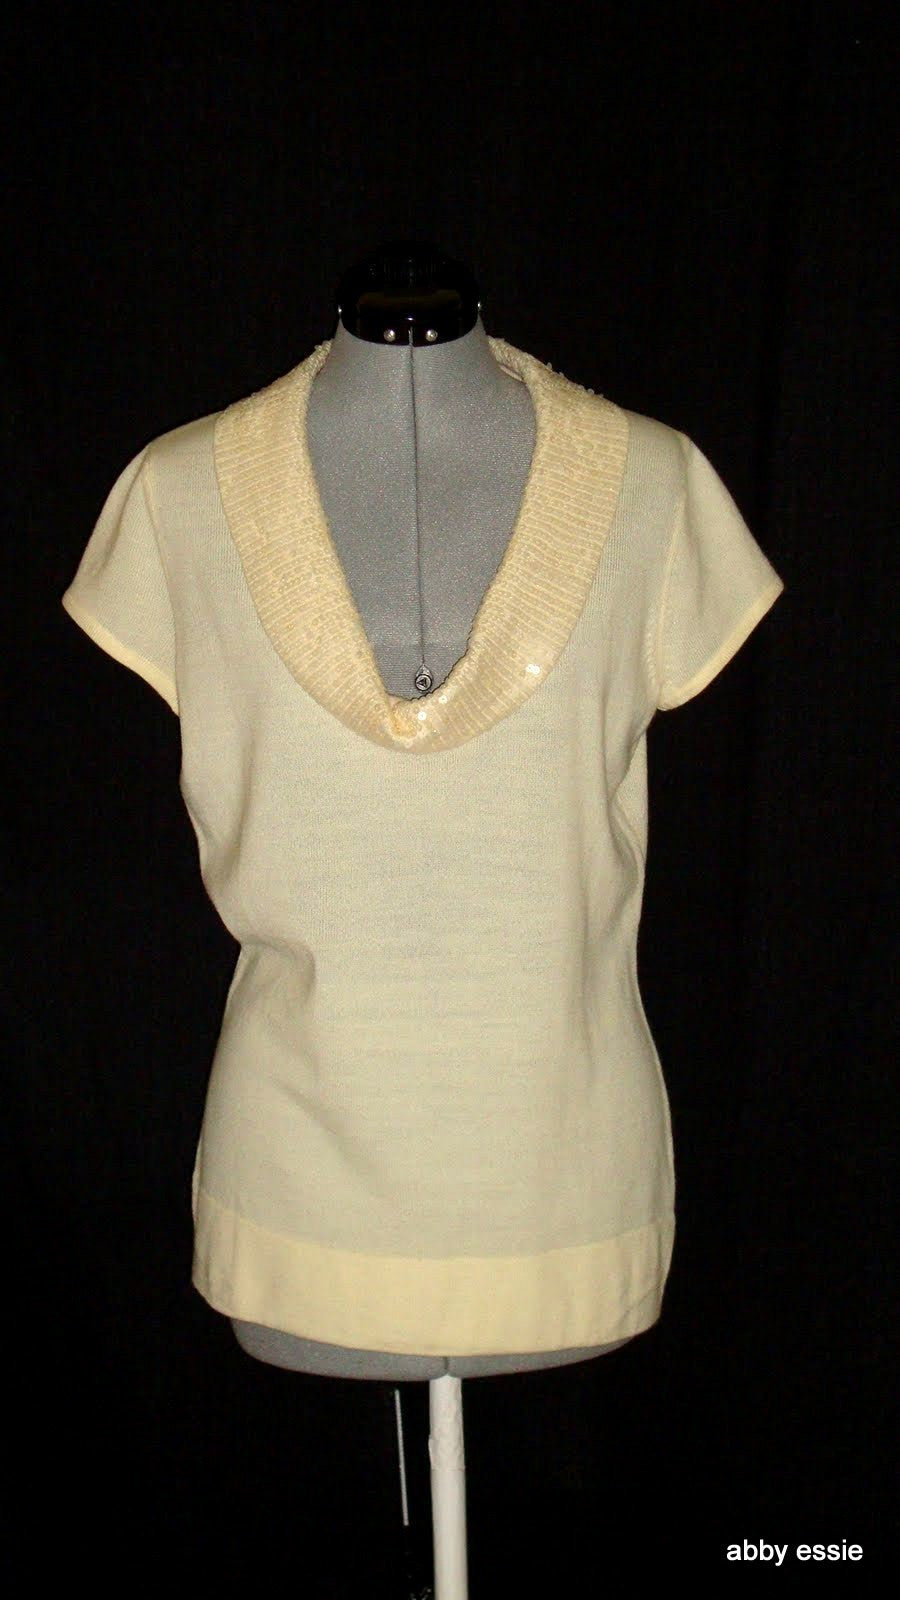 NWOT HAROLDS CREAM WHITE SEQUIN COLLAR COCKTAIL FORMAL SWEATER LARGE